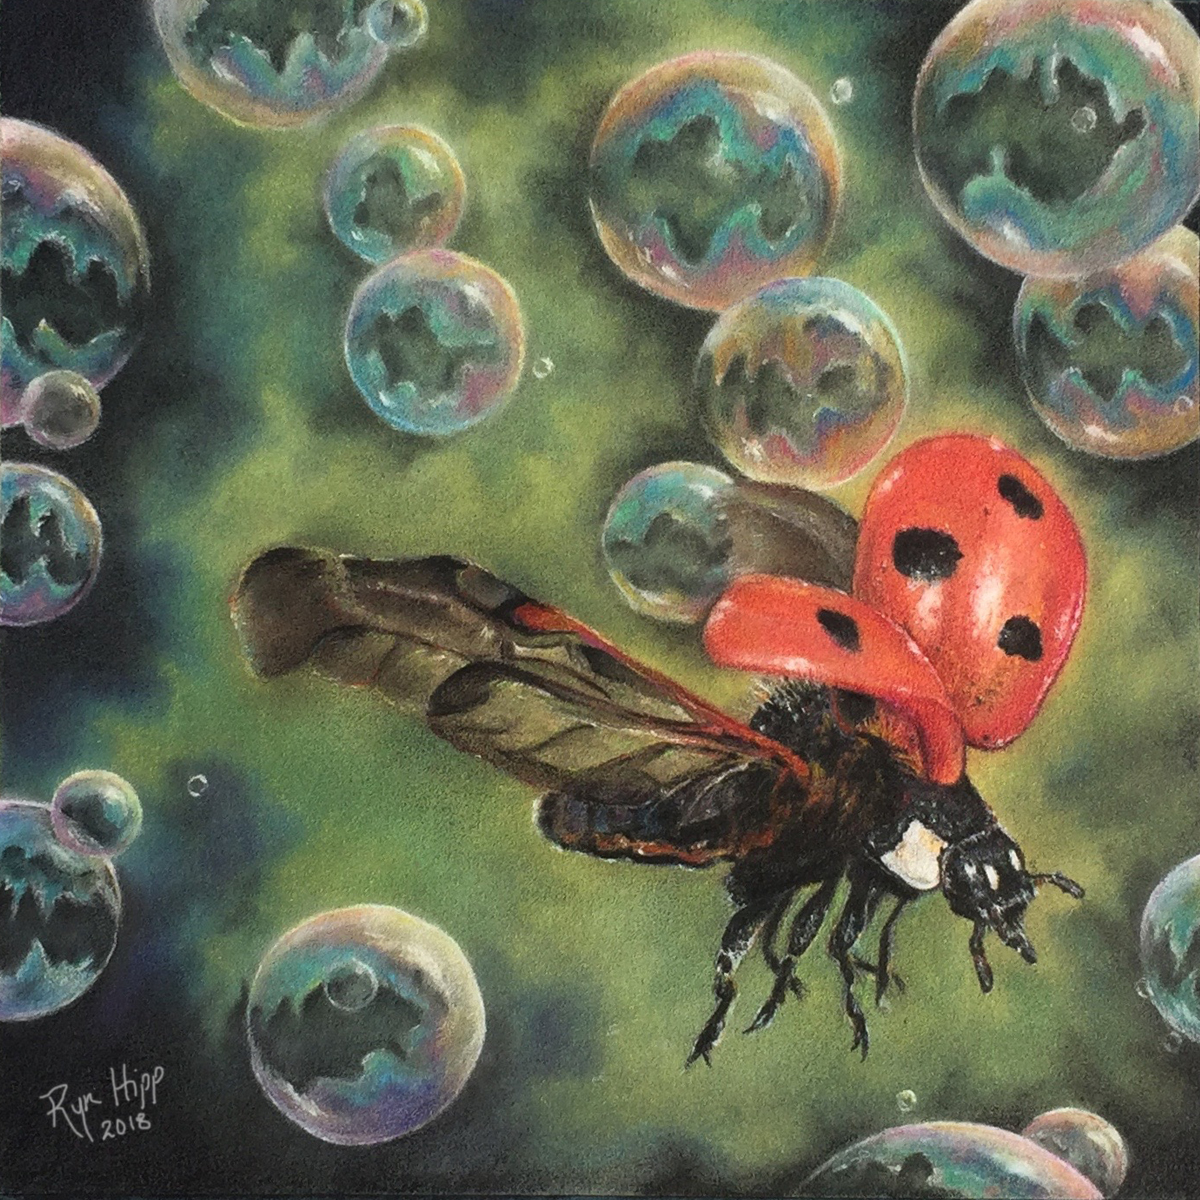 Colored pencil drawing of a ladybug in flight amidst soap bubbles.